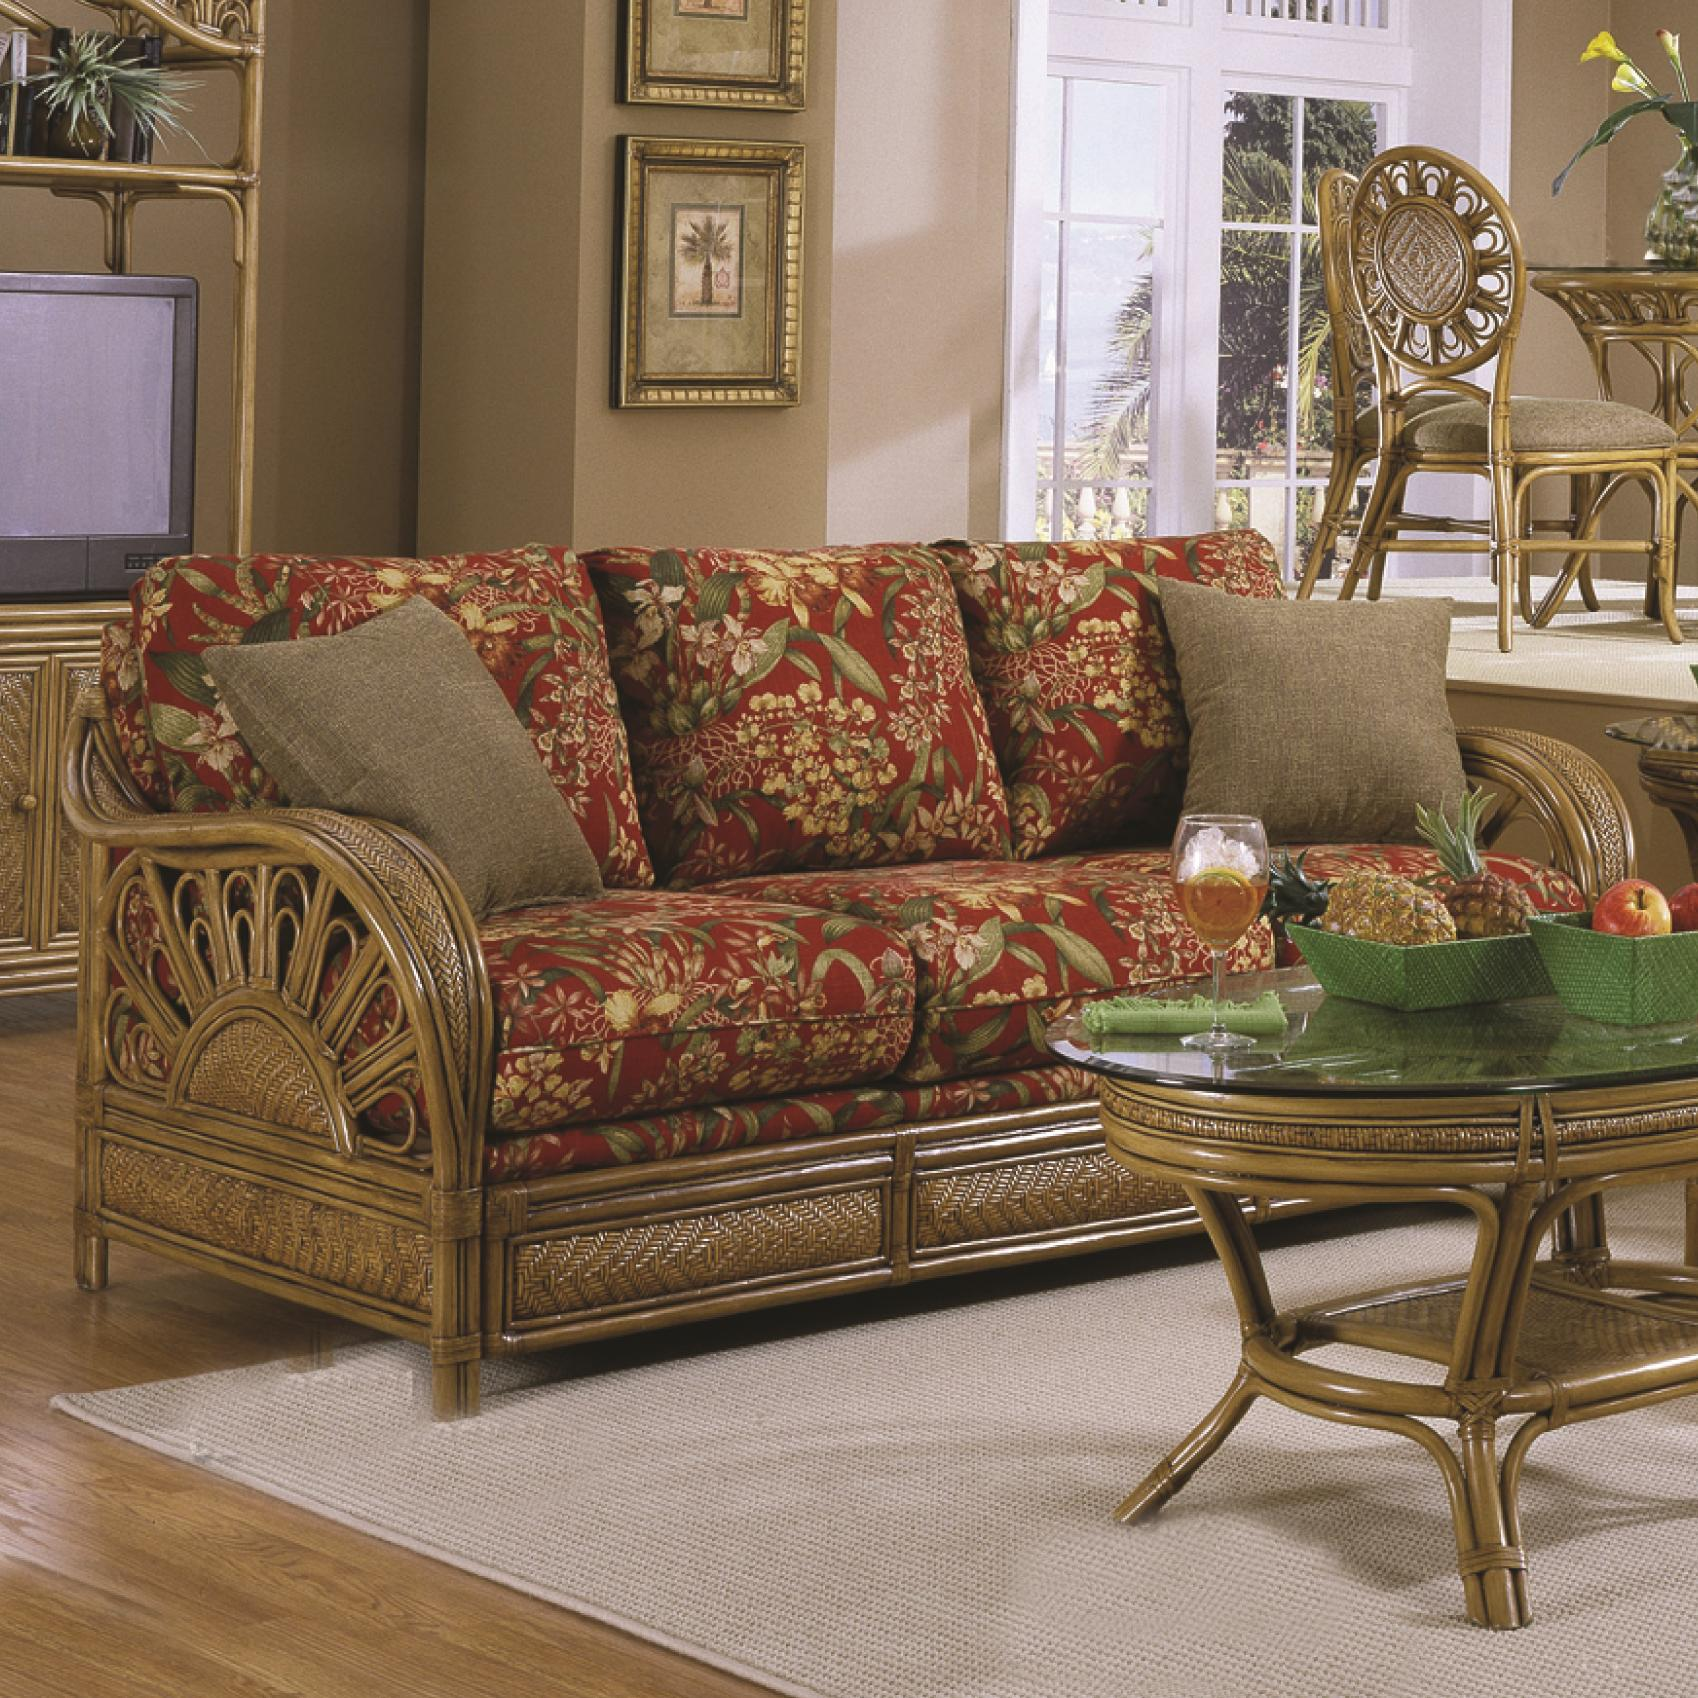 howell sofa living room ideas with dark brown leather sofas capris furniture 321 collection wicker rattan framed